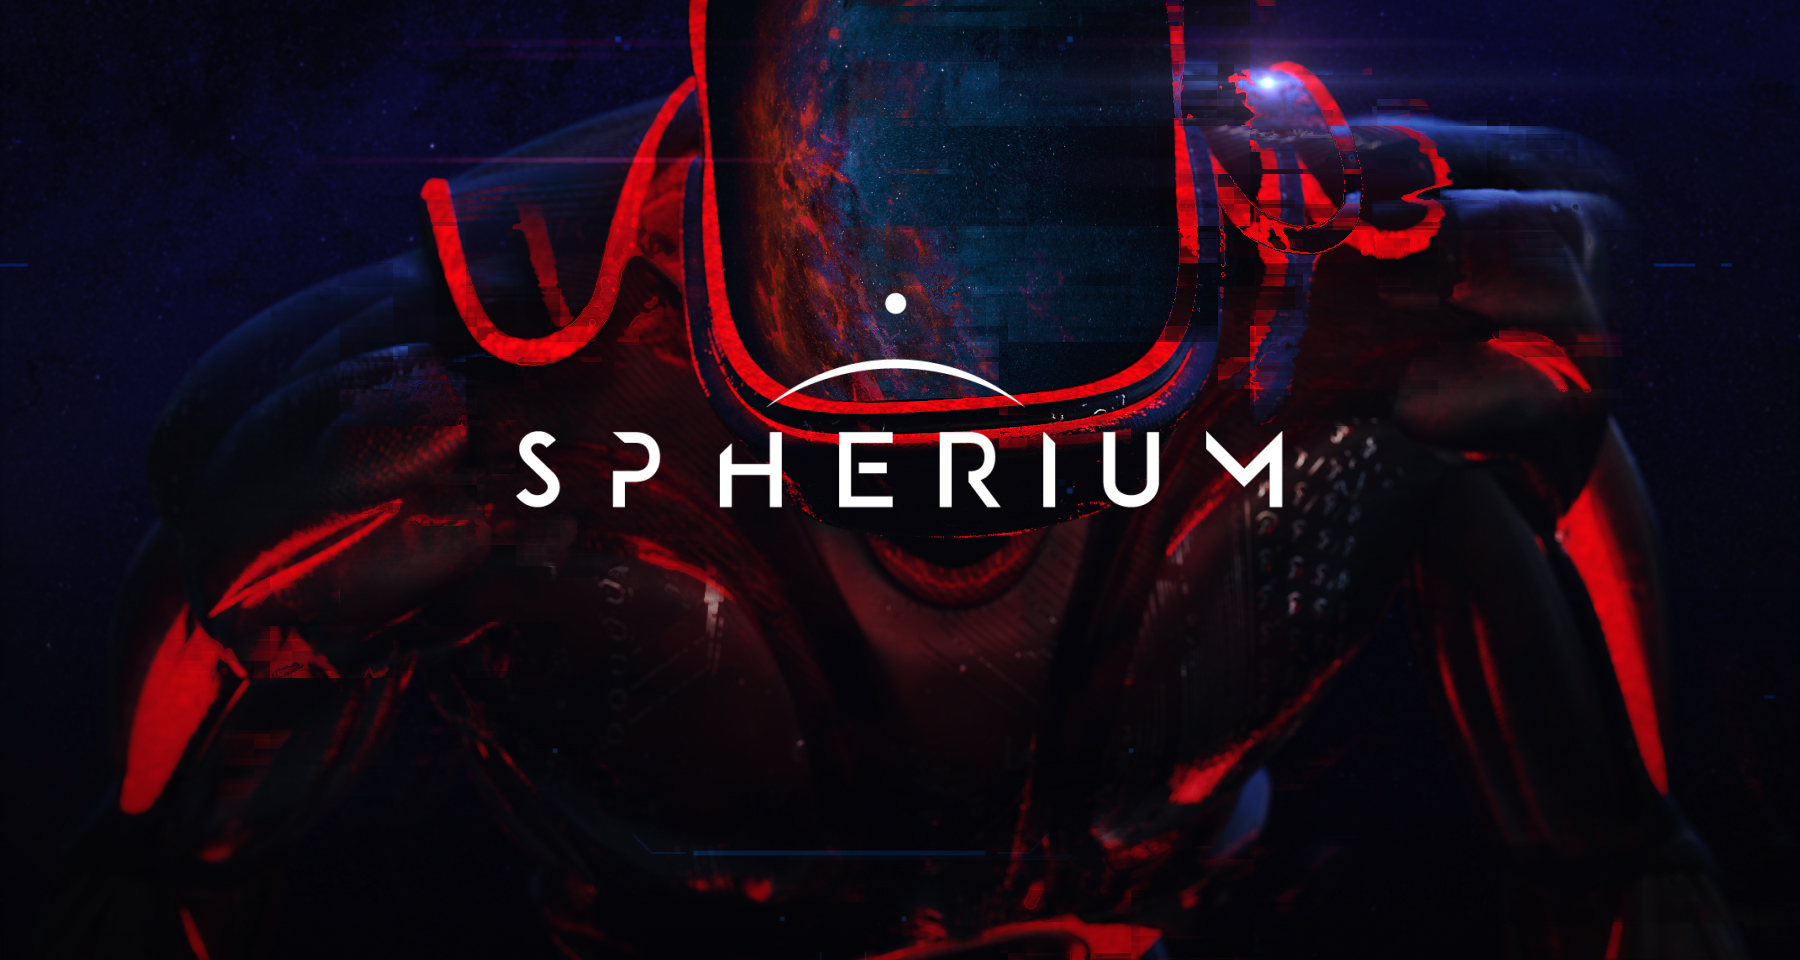 SPHERIUM 2